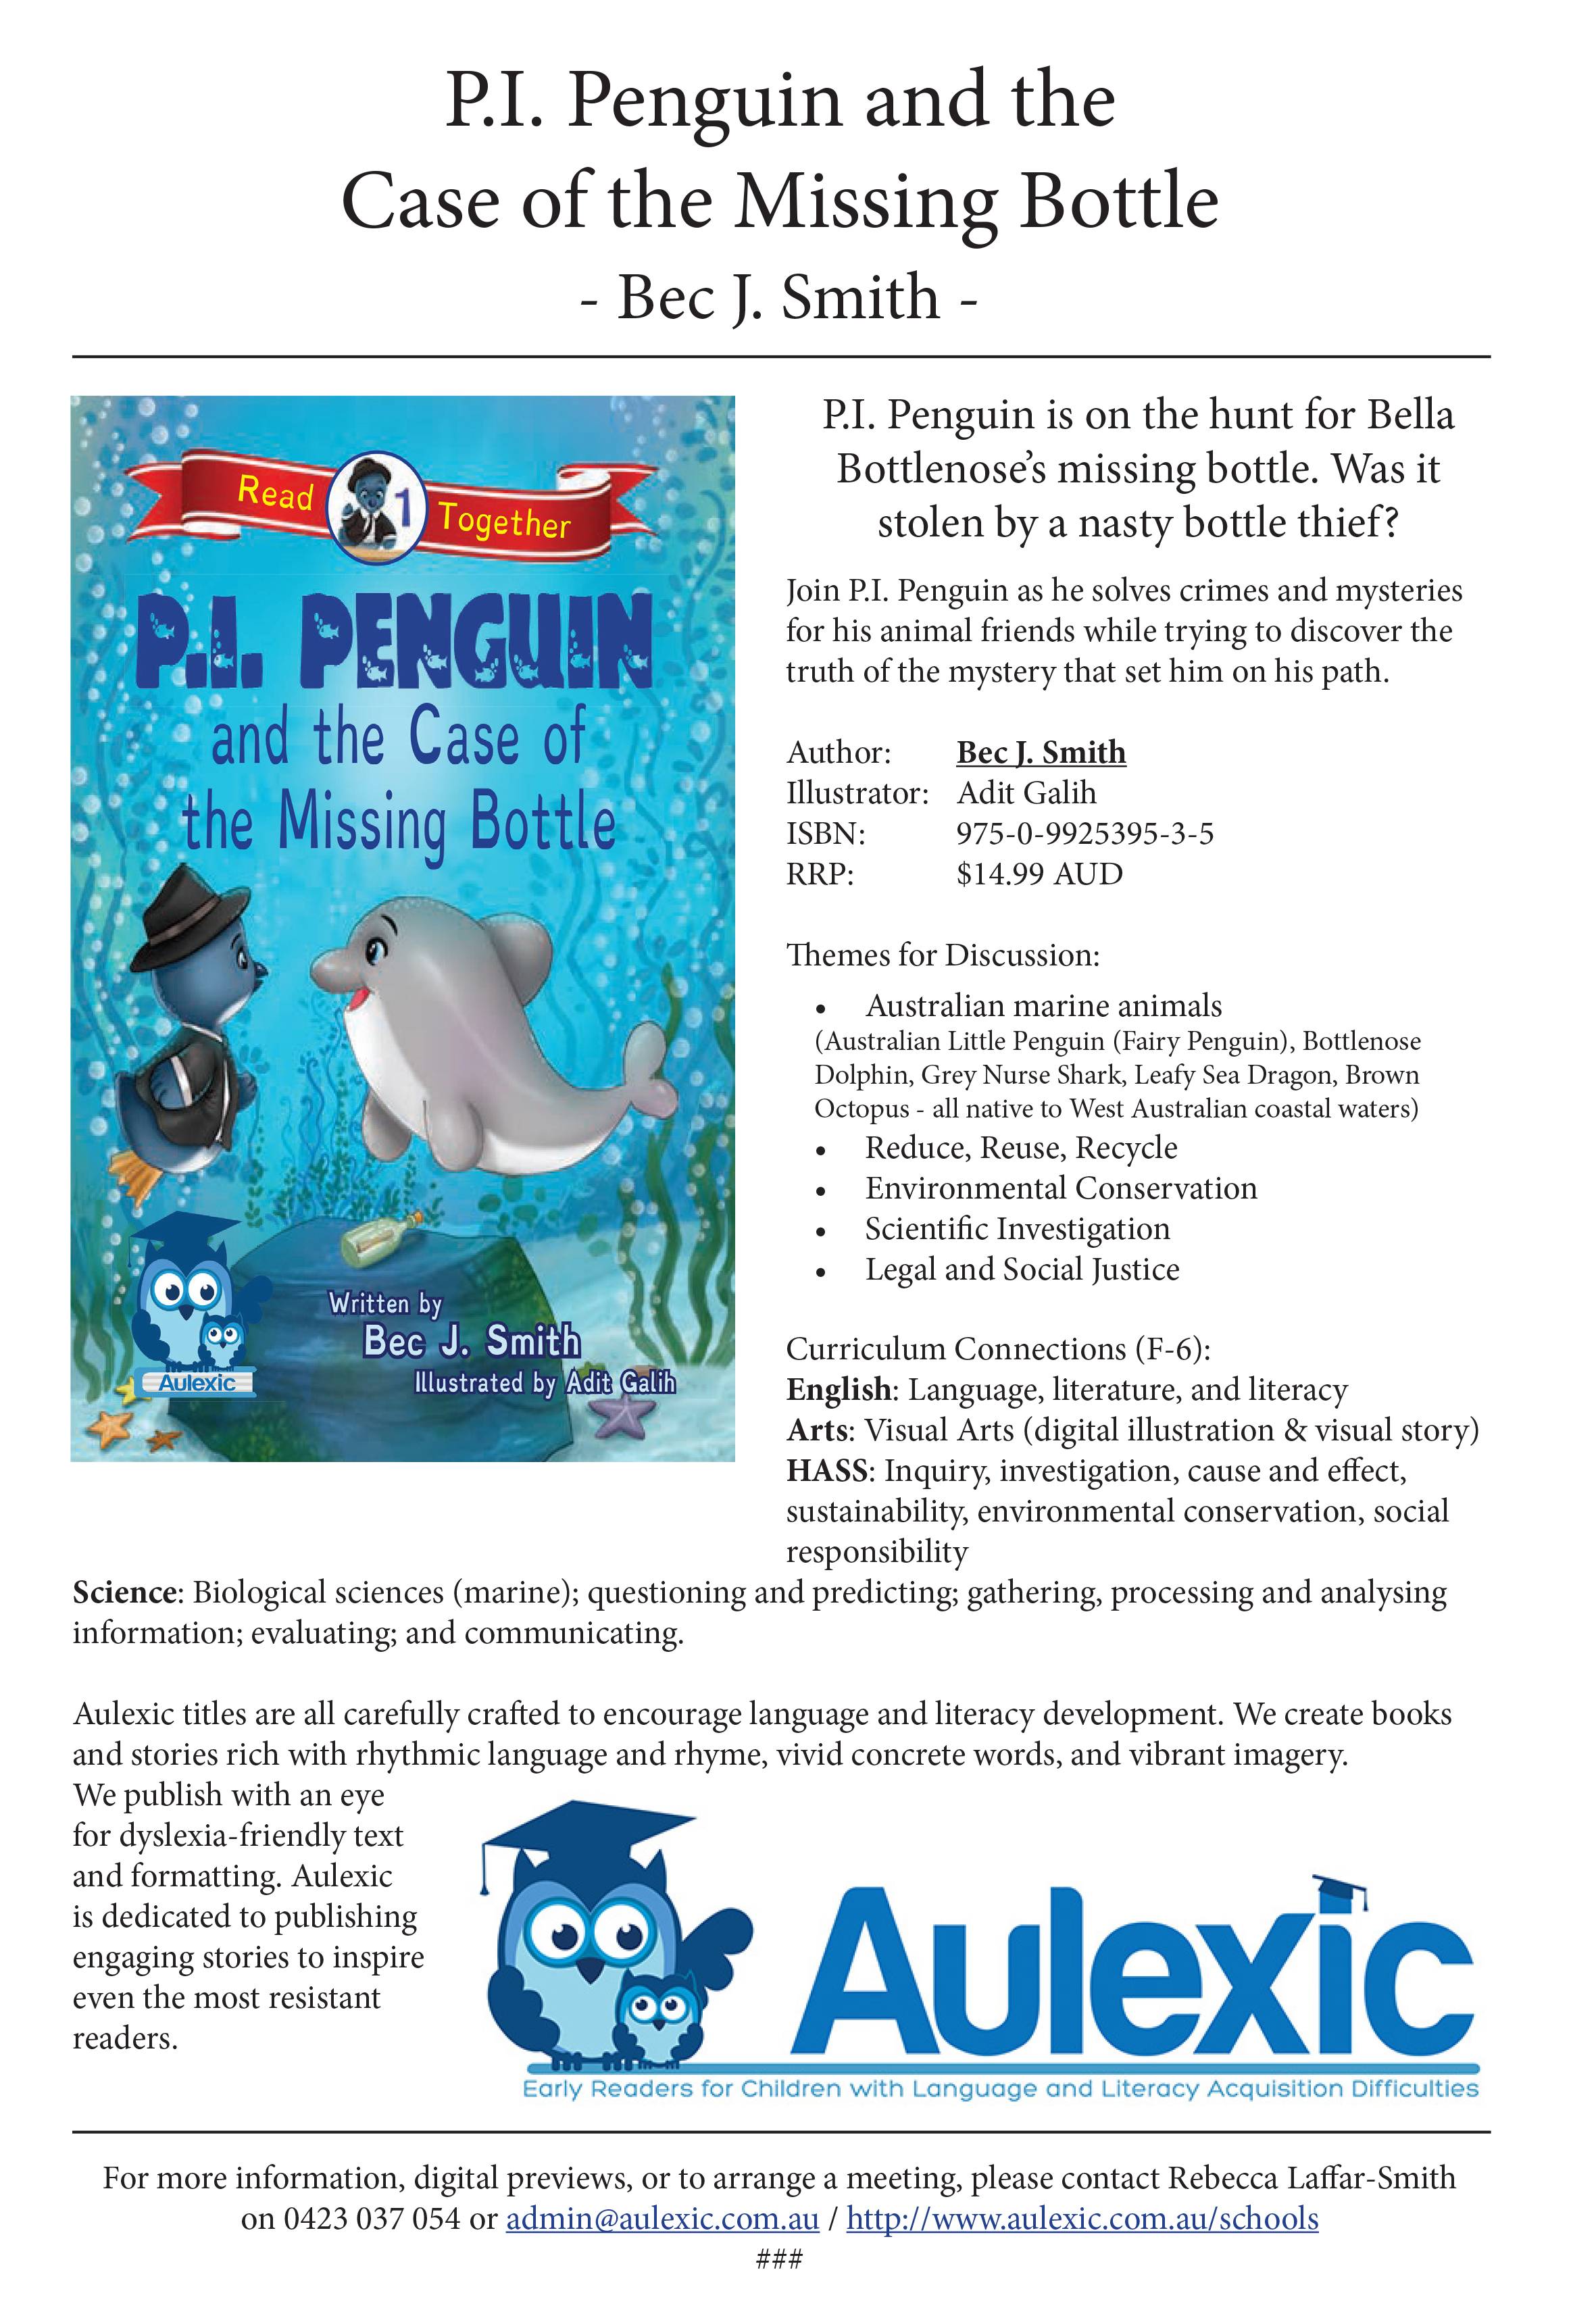 P.I. Penguin Series Information Package